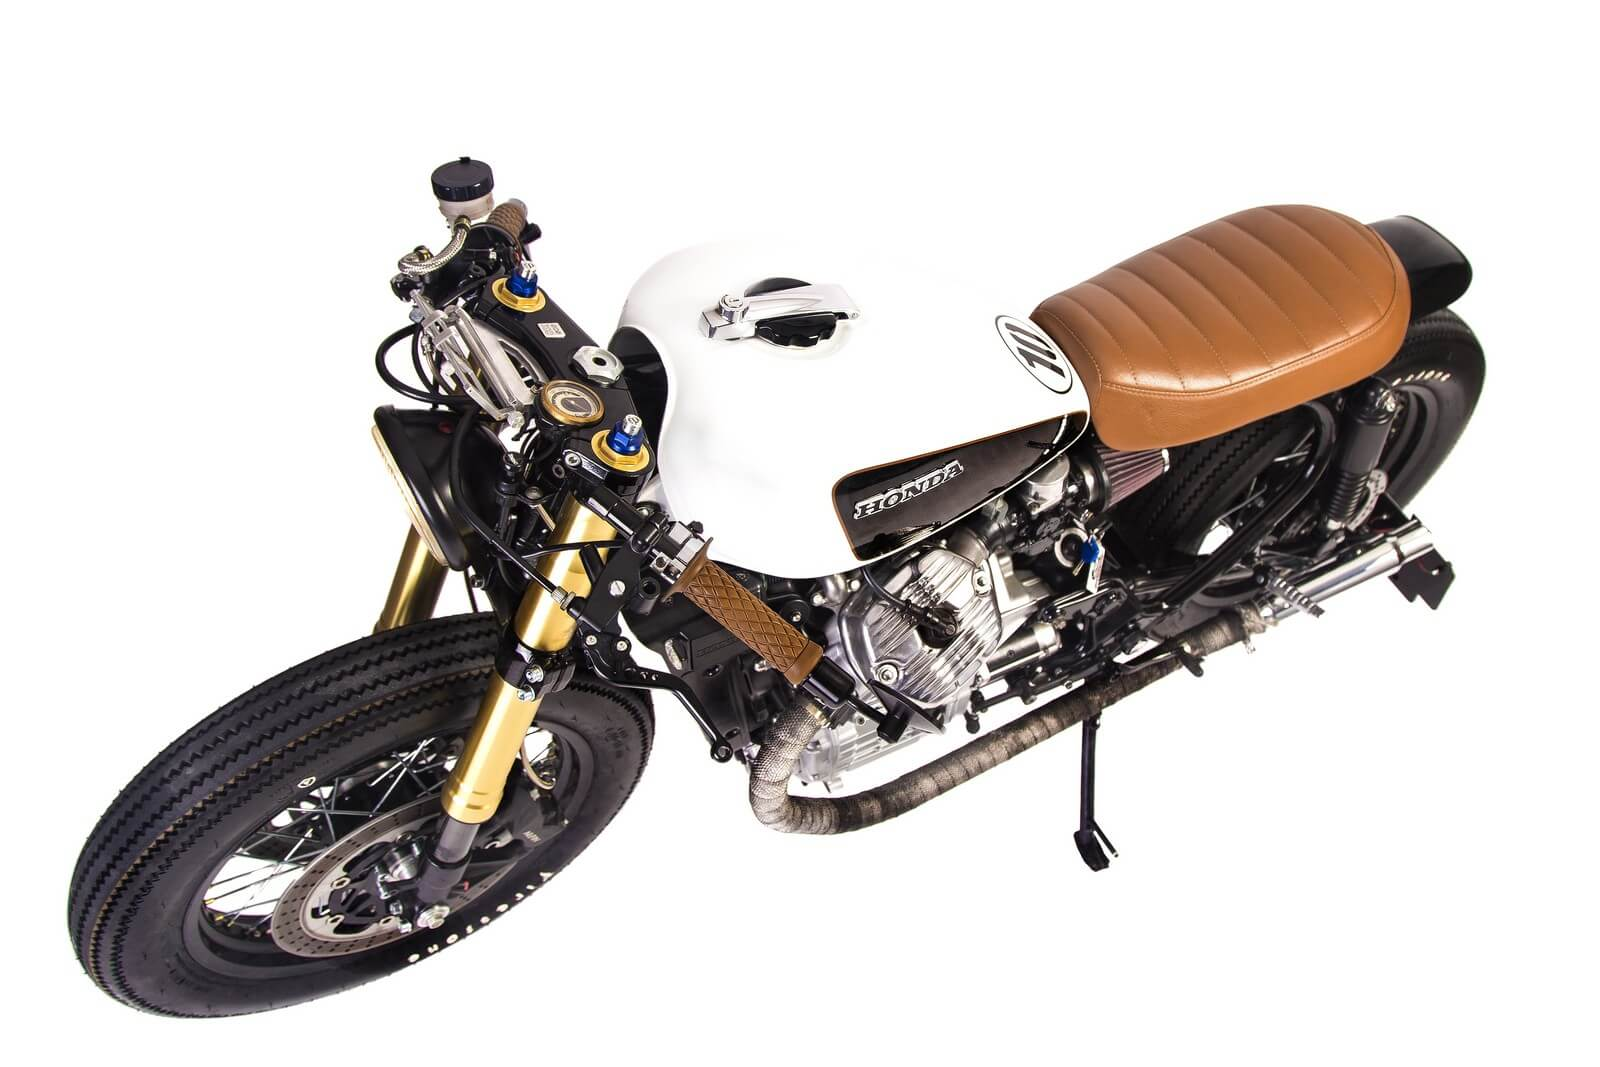 CX500 Caferacer 7